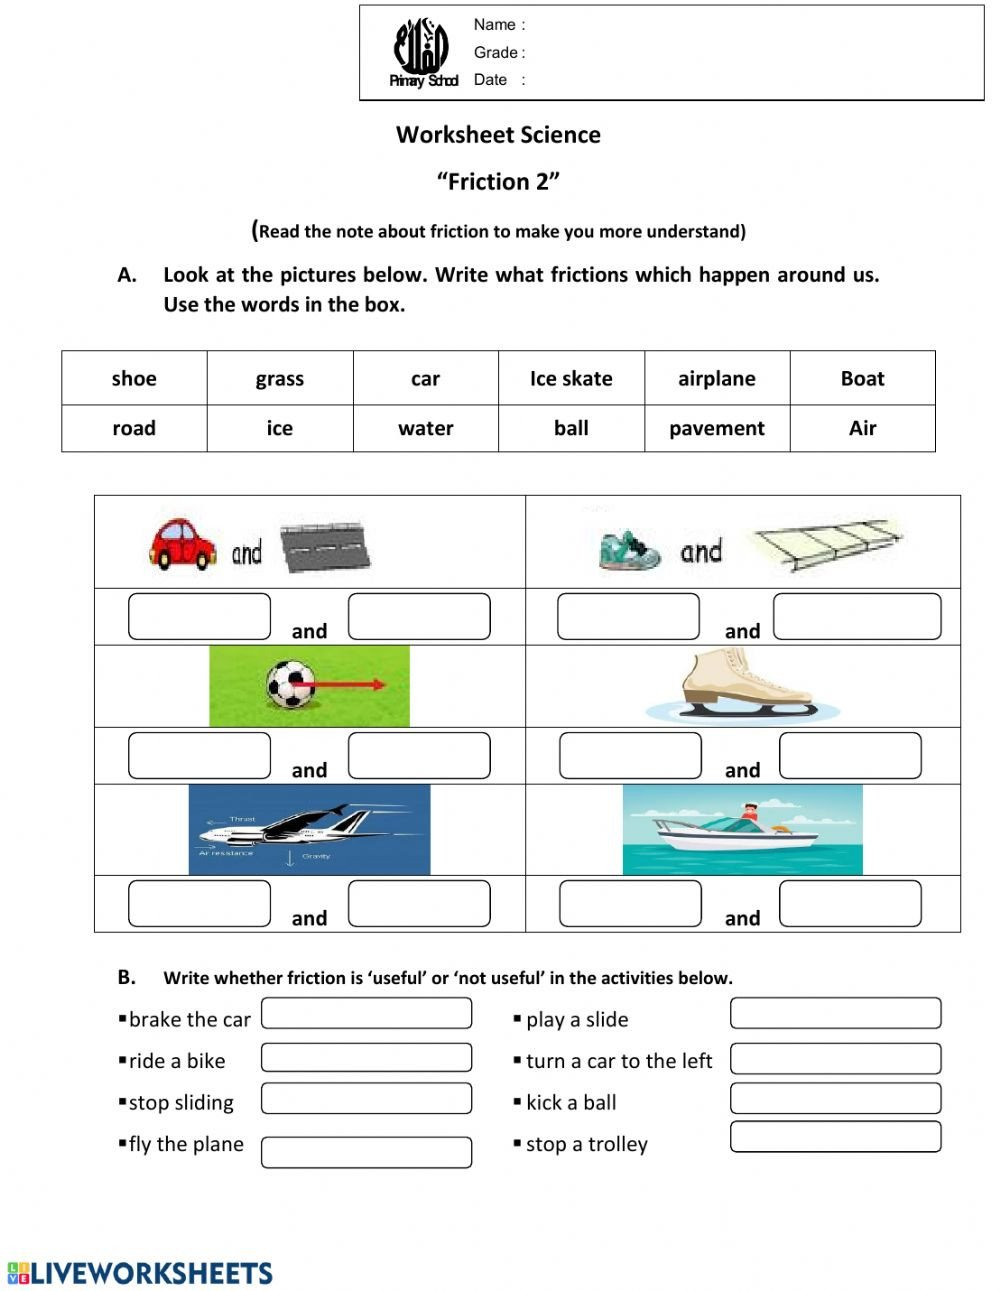 Science force and Motion Worksheets Worksheet Science Friction 2 Interactive Worksheet